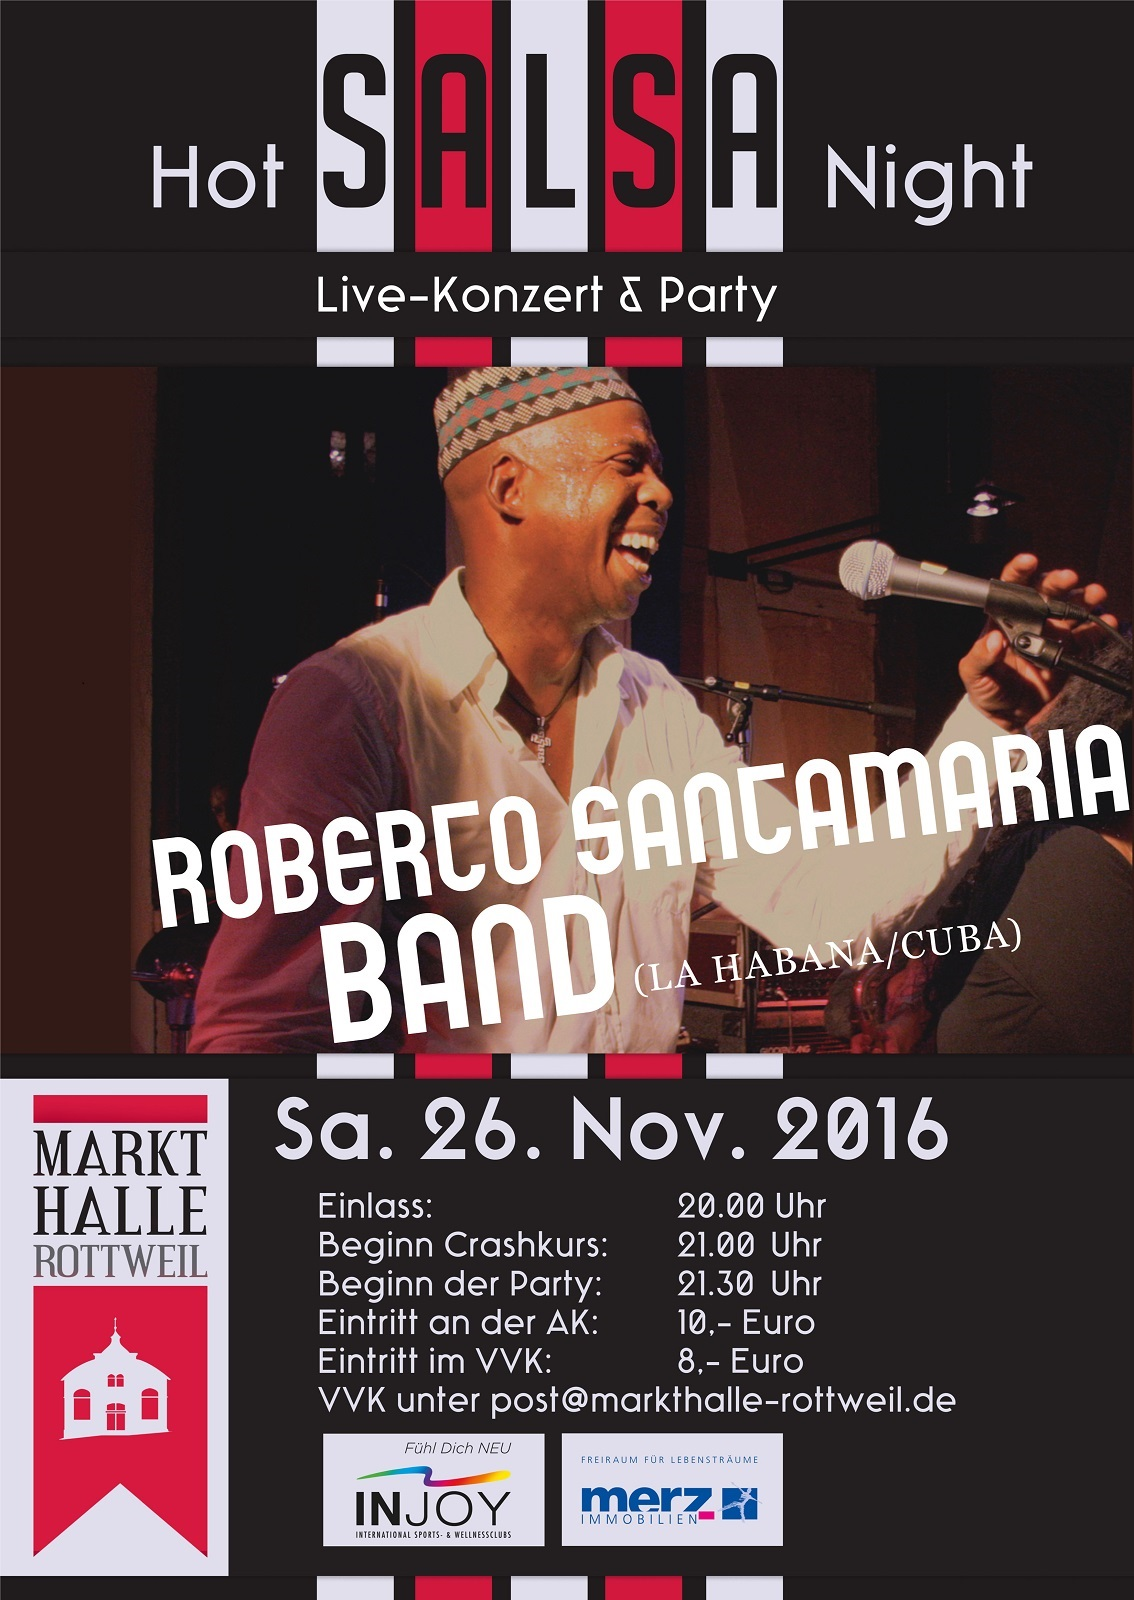 HOT SALSA NIGHT mit ROBERO SANTAMARIA in der MARKTHALLE ROTTWEIL in Rottweil